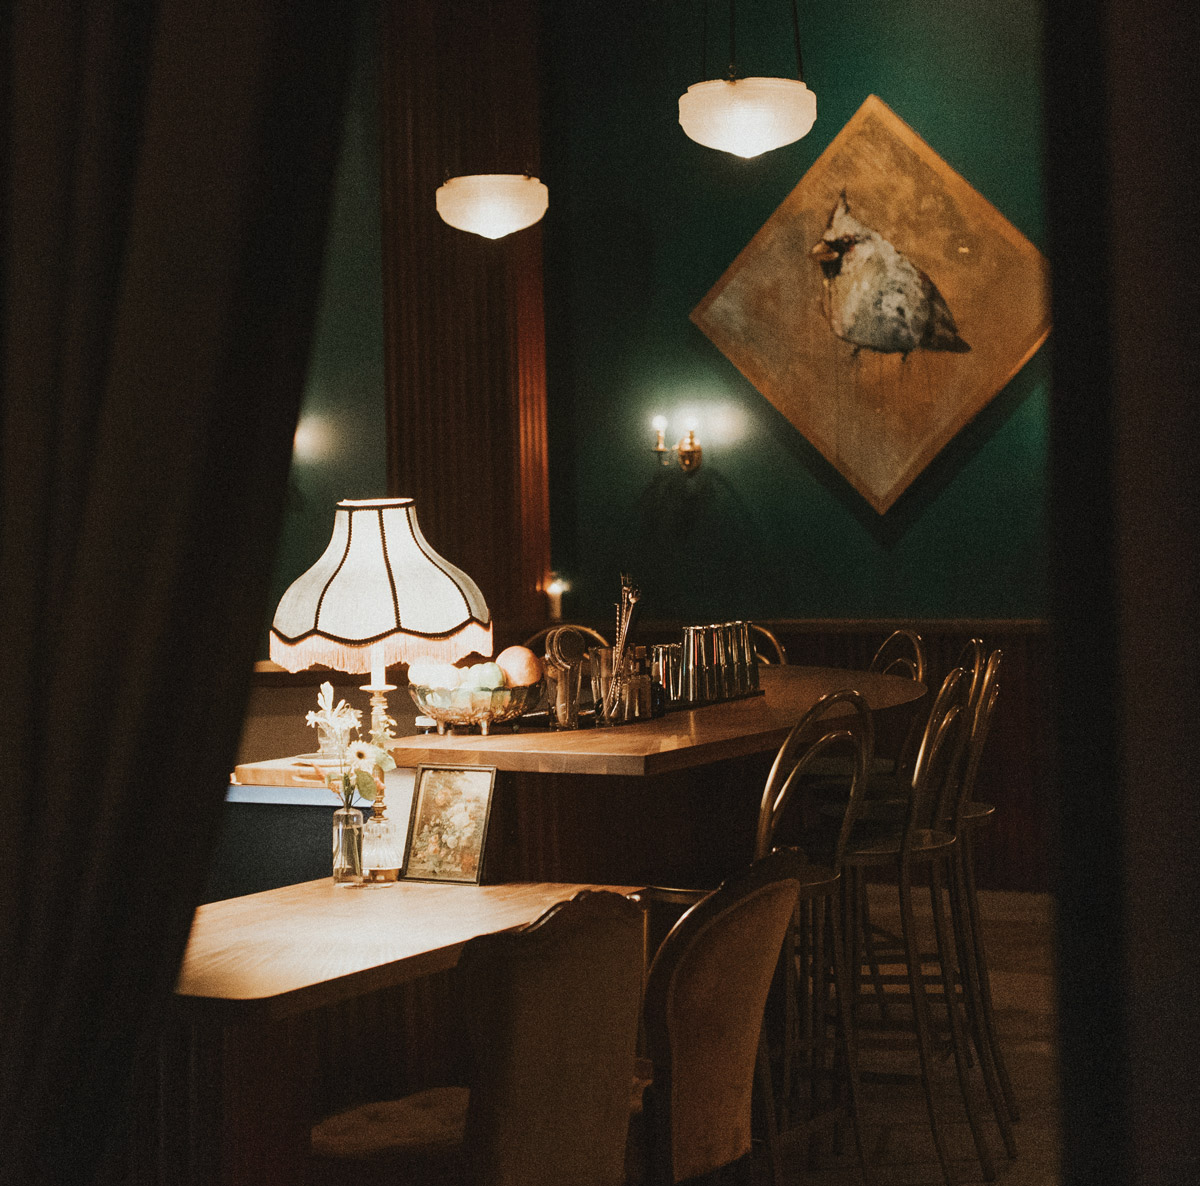 Peeking through the curtain to empty tables at the Cardinal